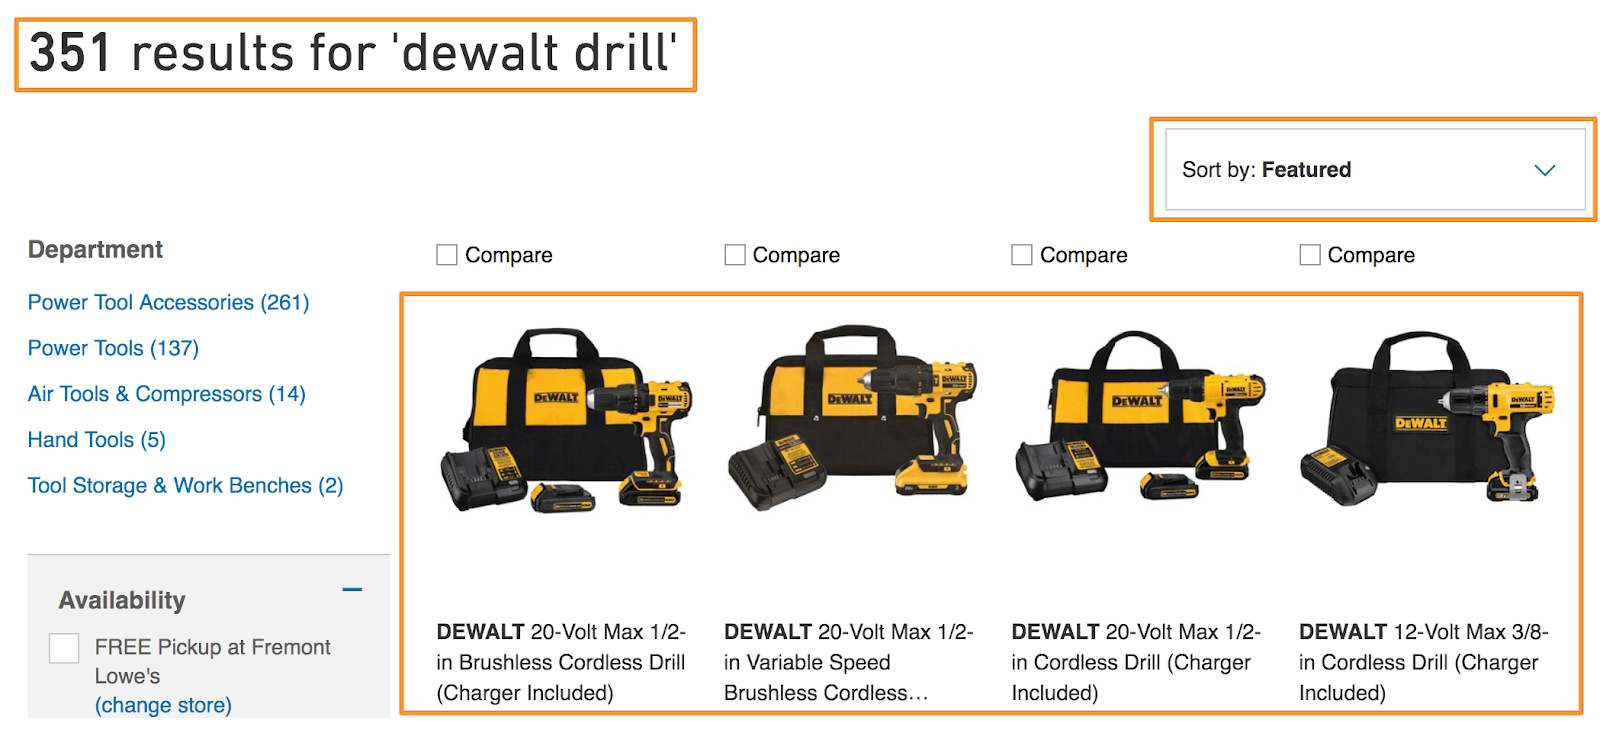 lowes_dewalt_drill_featured--2--1